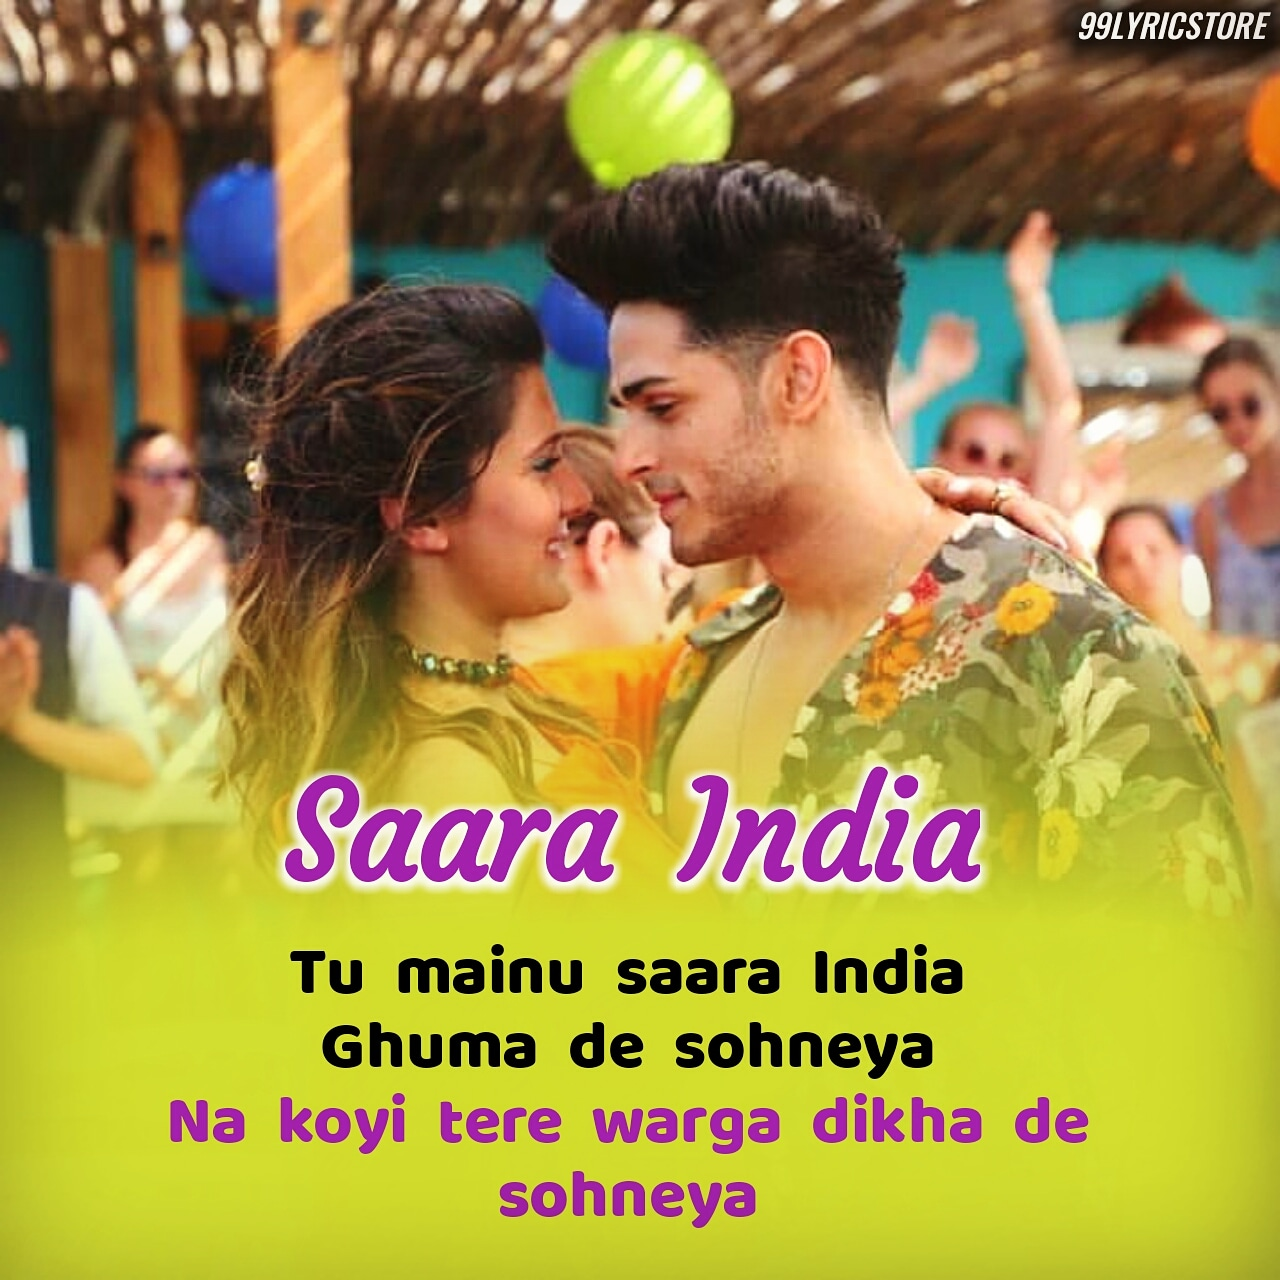 Saara India Punjabi Song Lyrics Sung By Aastha Gill Feat. Priyank Sharma